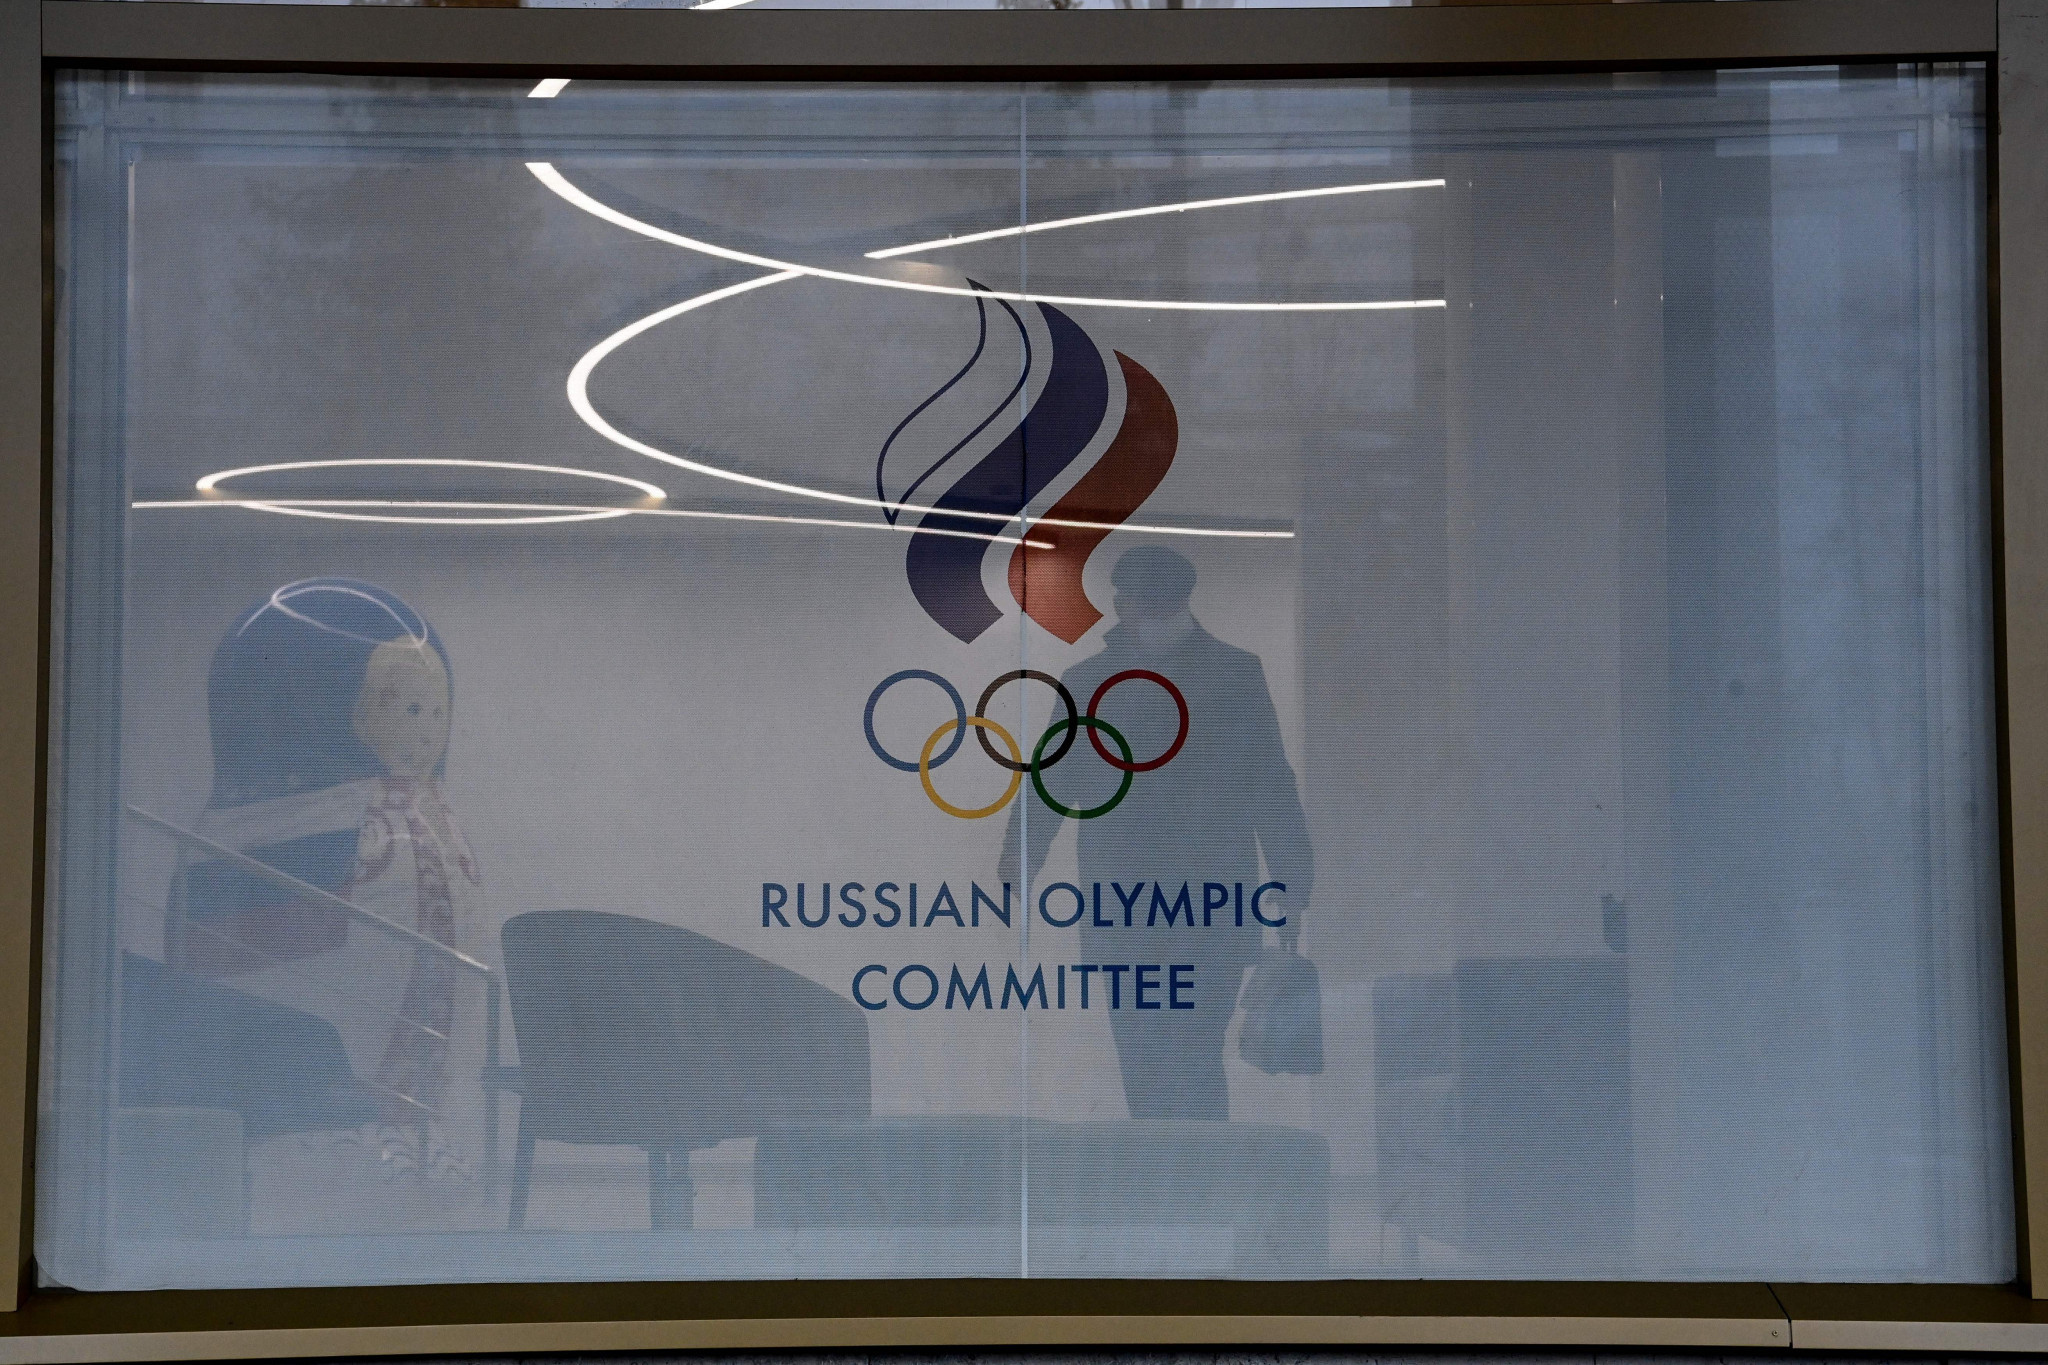 A Russian Olympic Committee flag will replace the Russian tricolour at IIHF World Championships, according to state media reports ©Getty Images